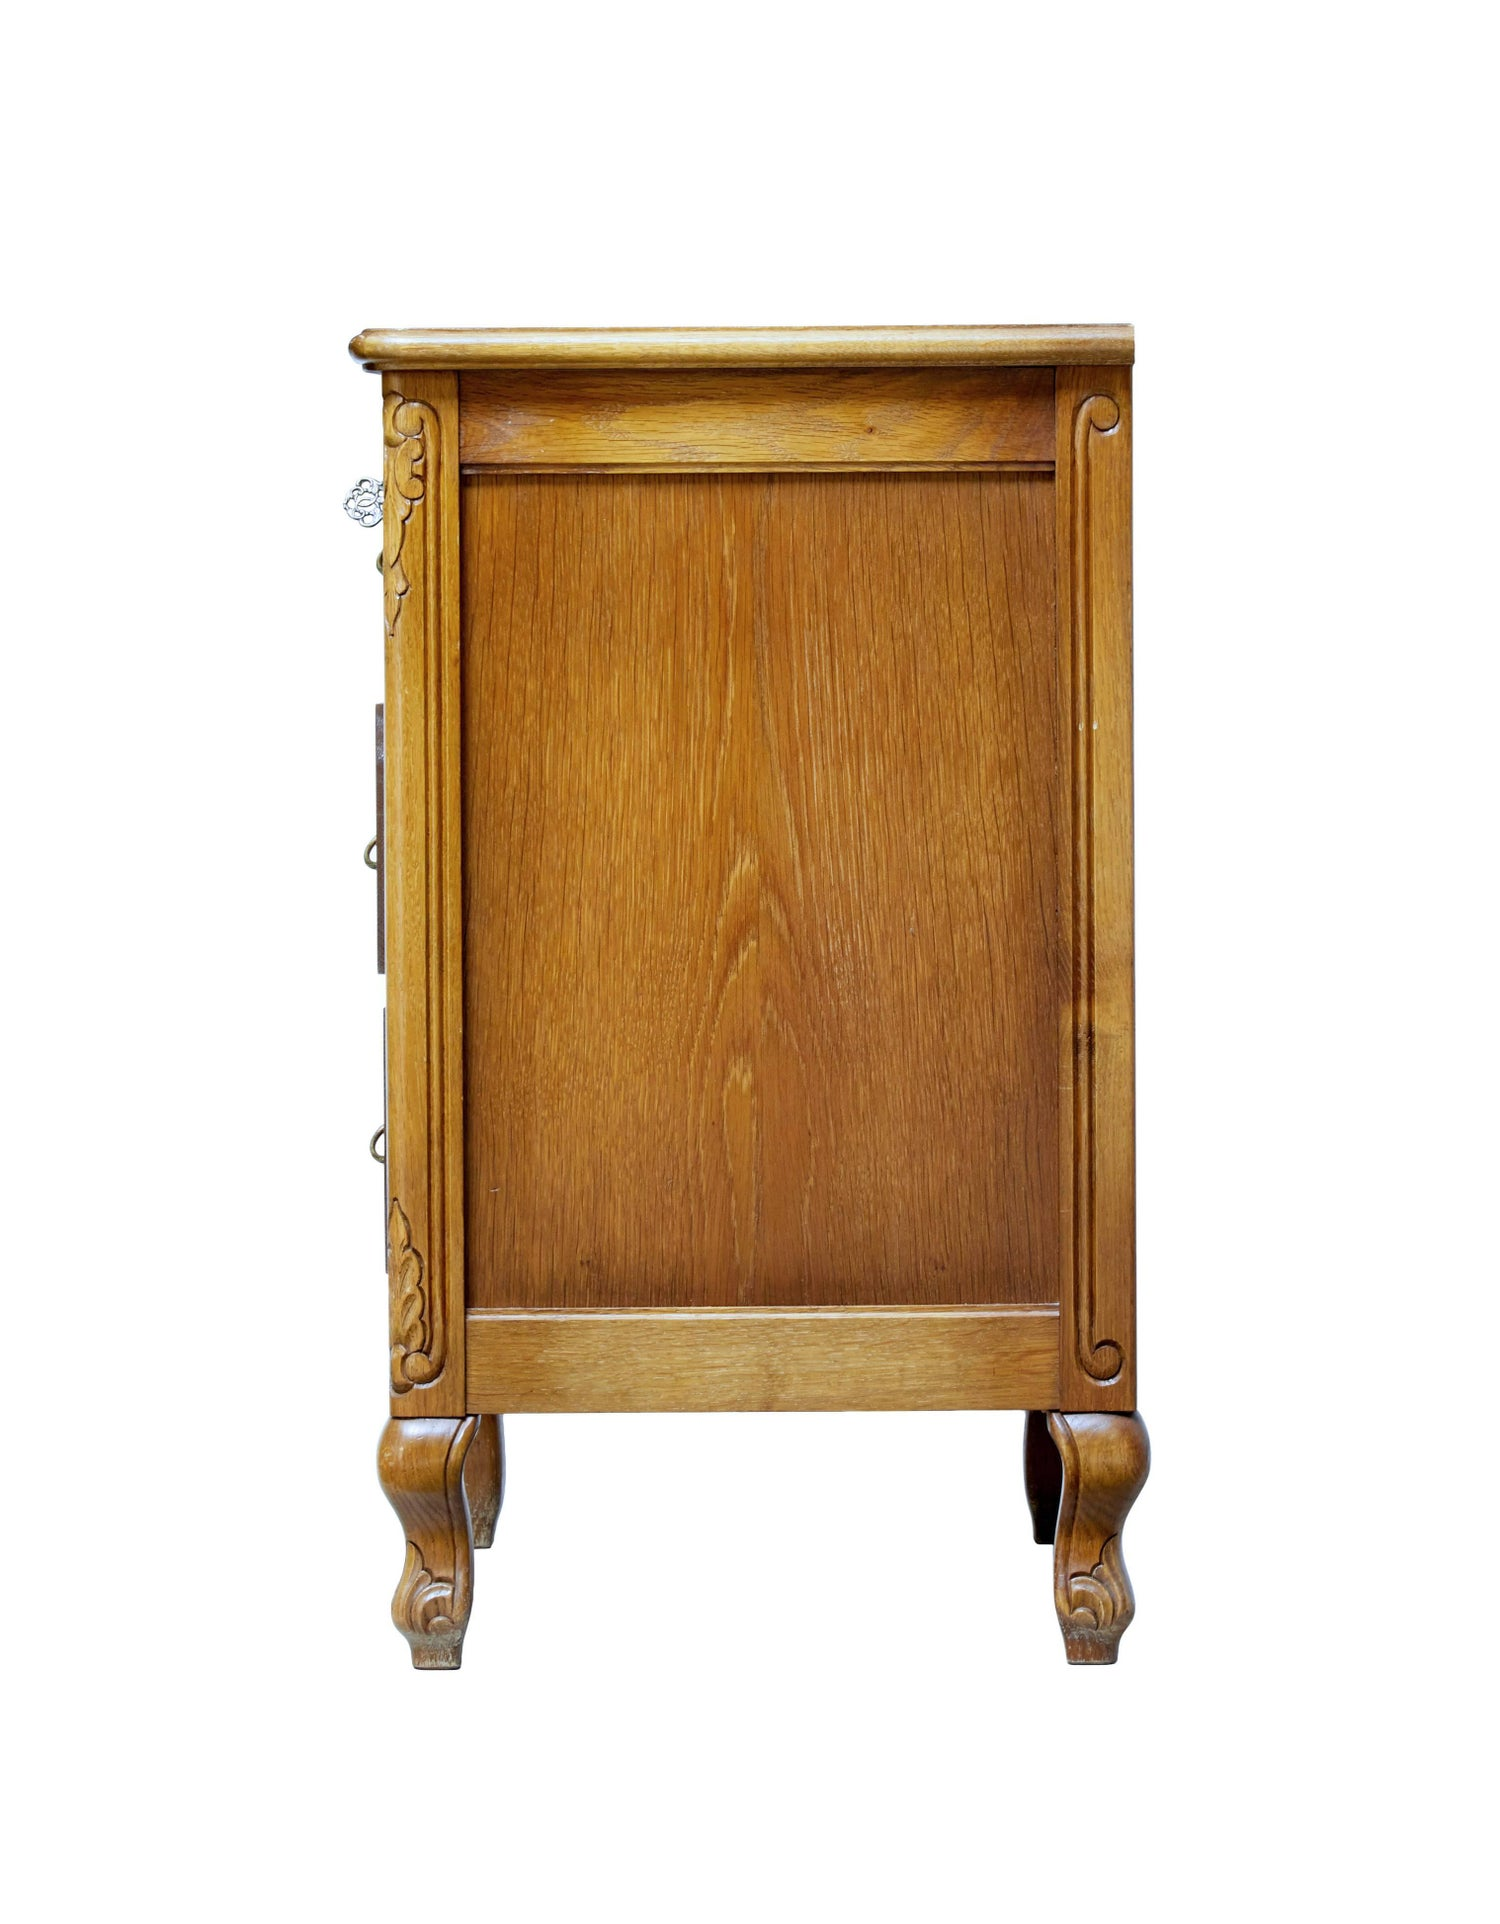 20th Century Small Carved Oak Commode Chest of Drawers For Sale at ...